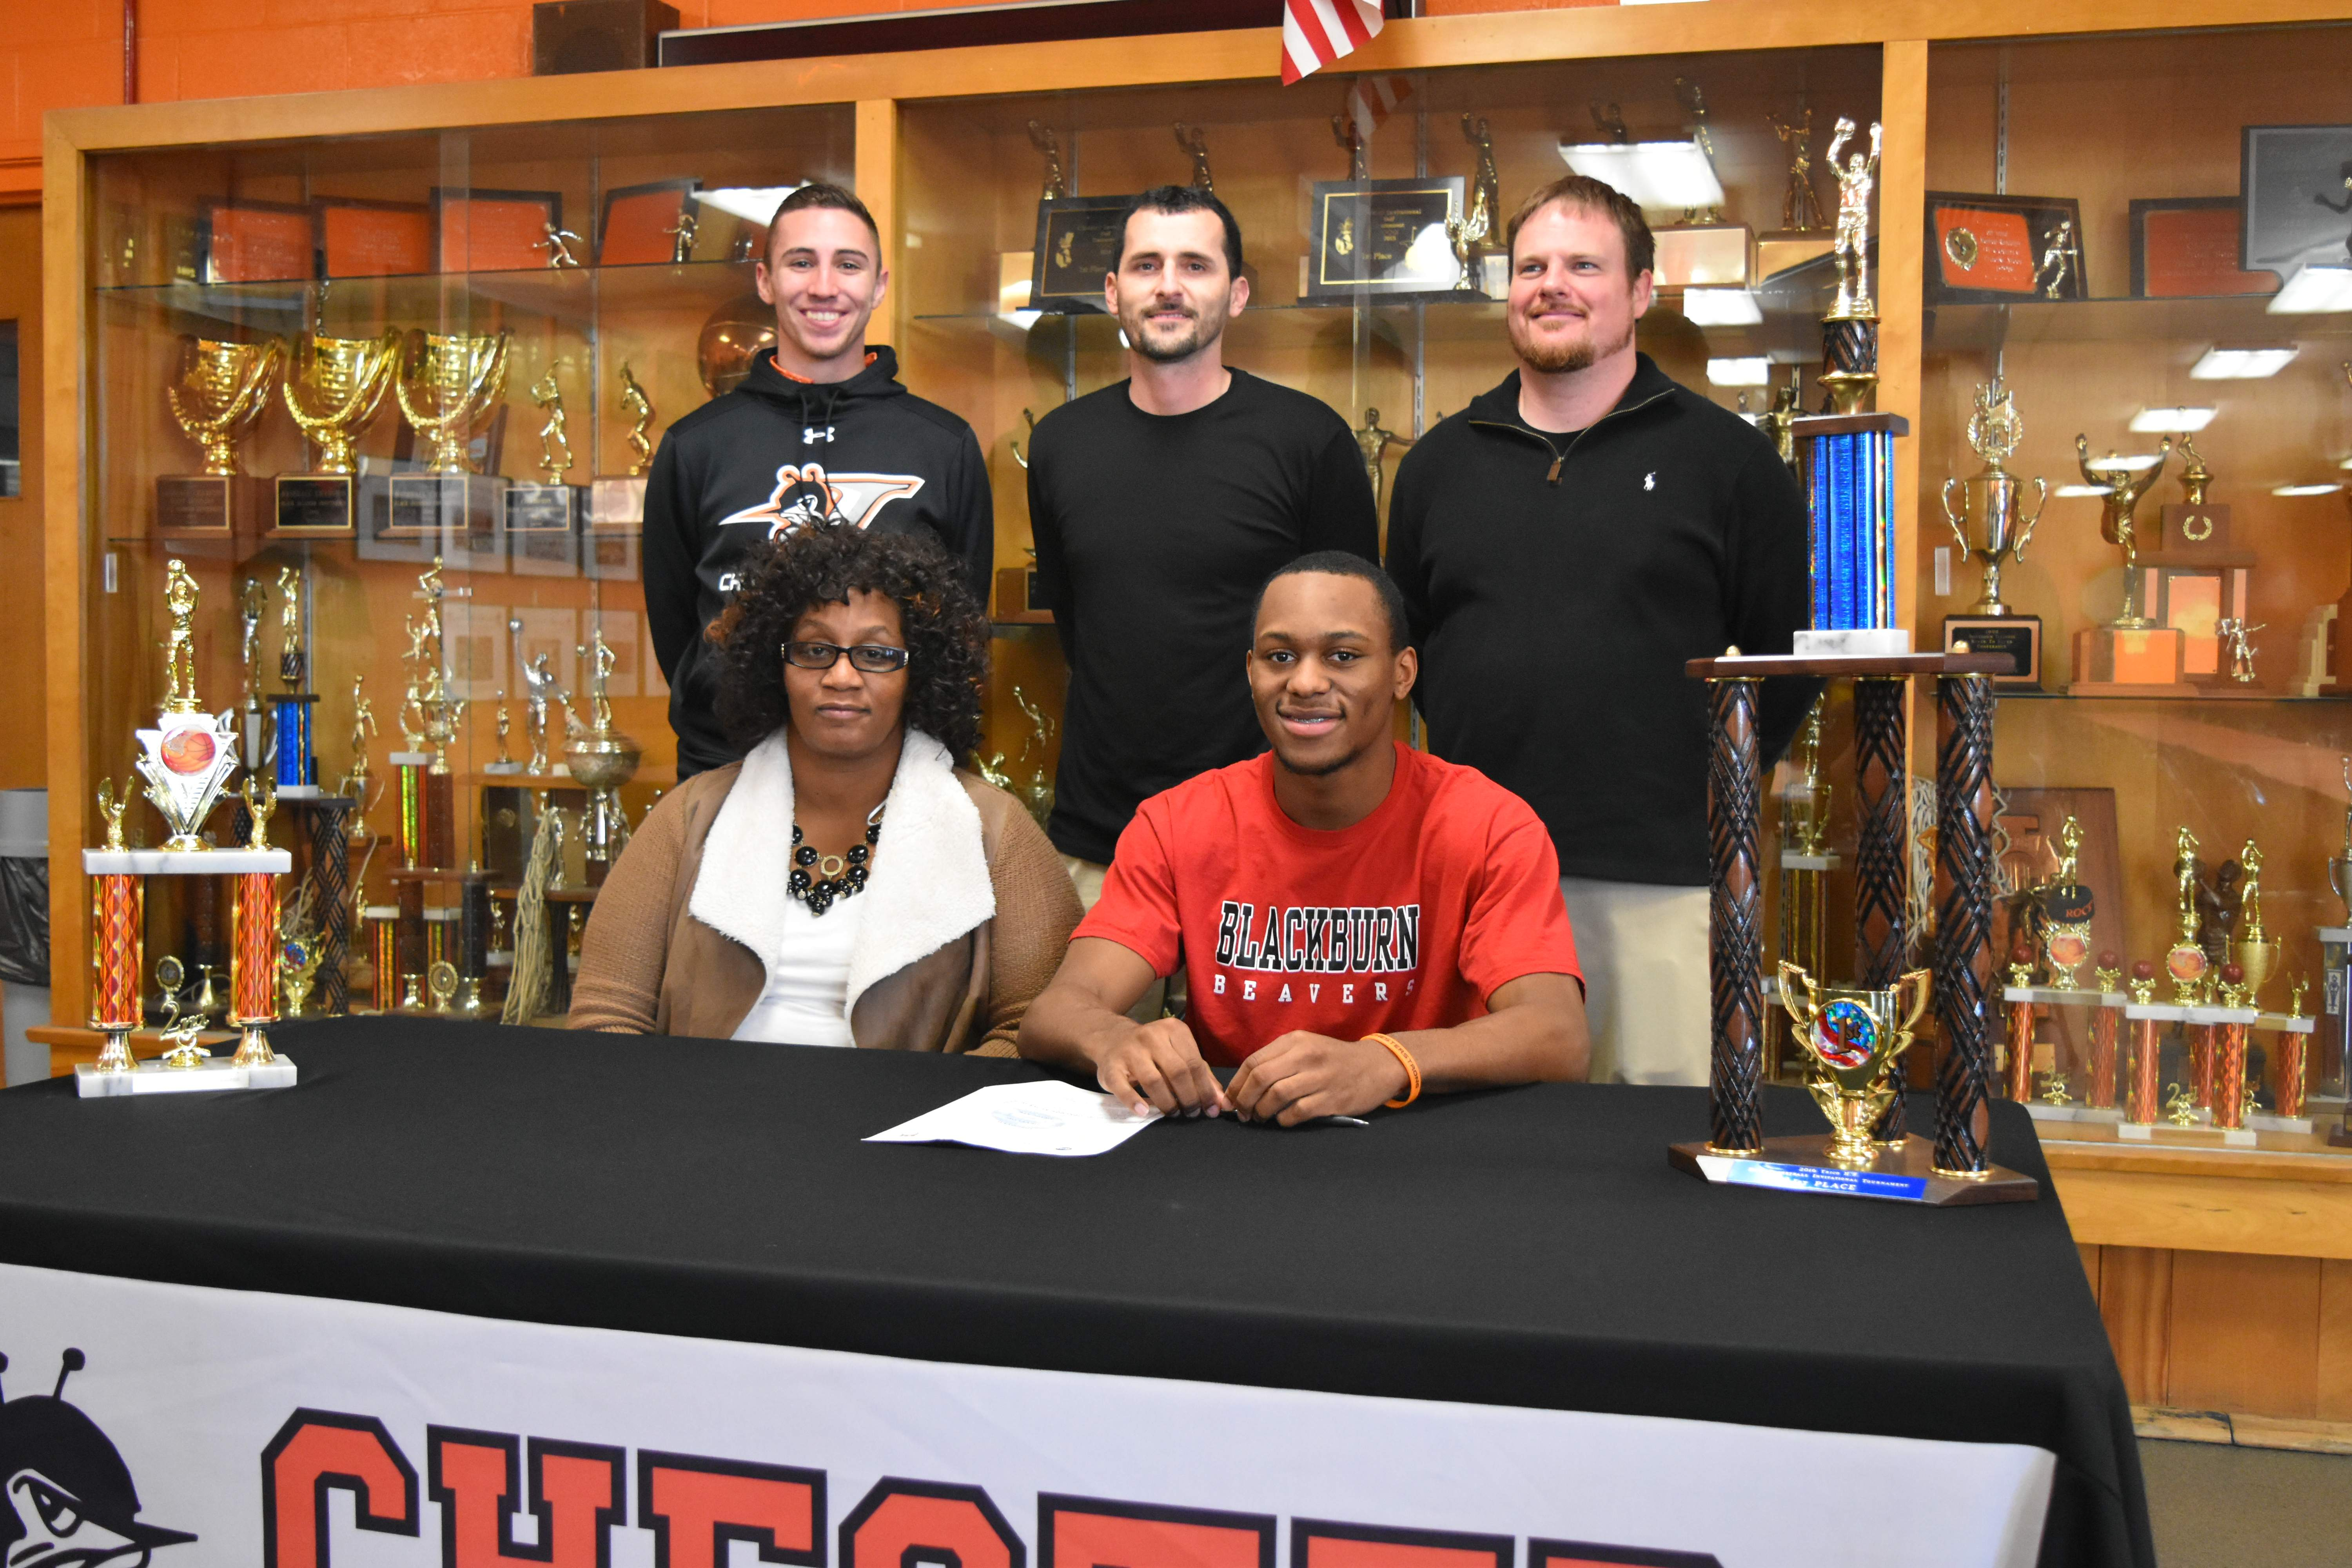 Chester senior Savion Smith (front row, right) signed a national letter-of-intent on Wednesday to play basketball for Blackburn College. Pictured with Smith is his mother, Debrah Merriweather (front row, left), assistant football coach Jake Cowan (back row, left), boys head basketball coach Brad Norman (back row, center) and assistant football coach Ben Hunter (back row, right).